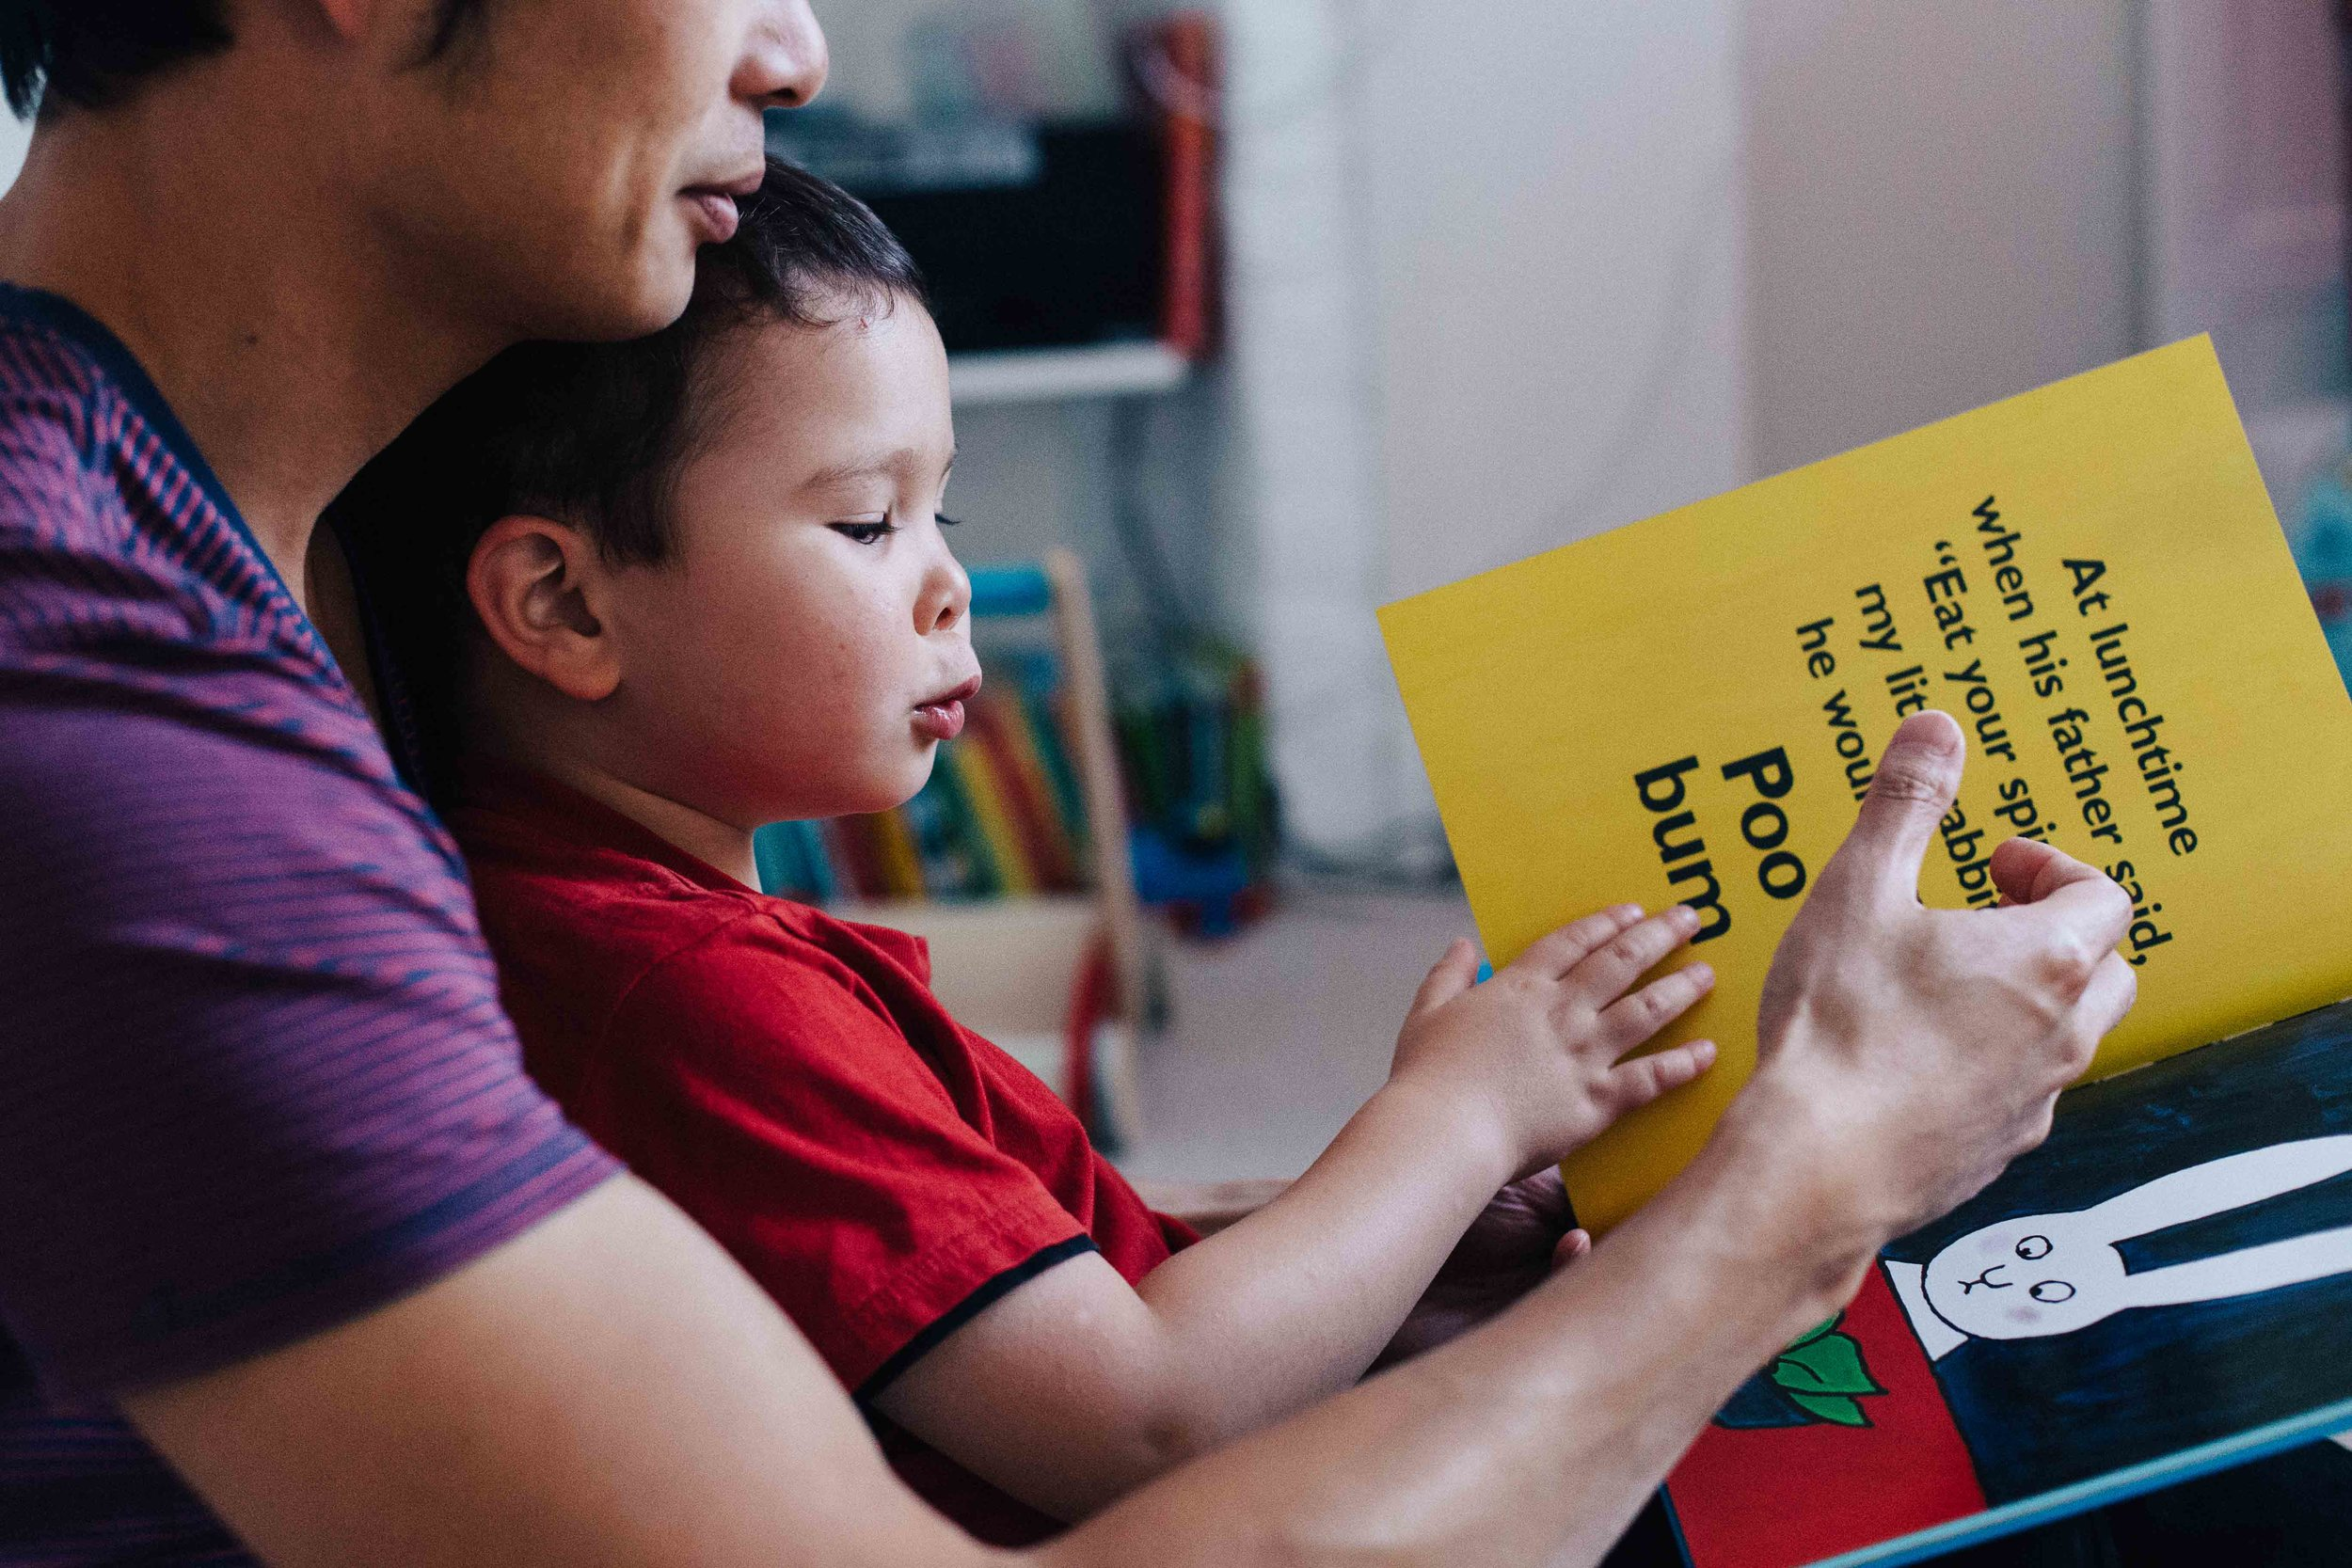 Child reading Poo Bum book with his father